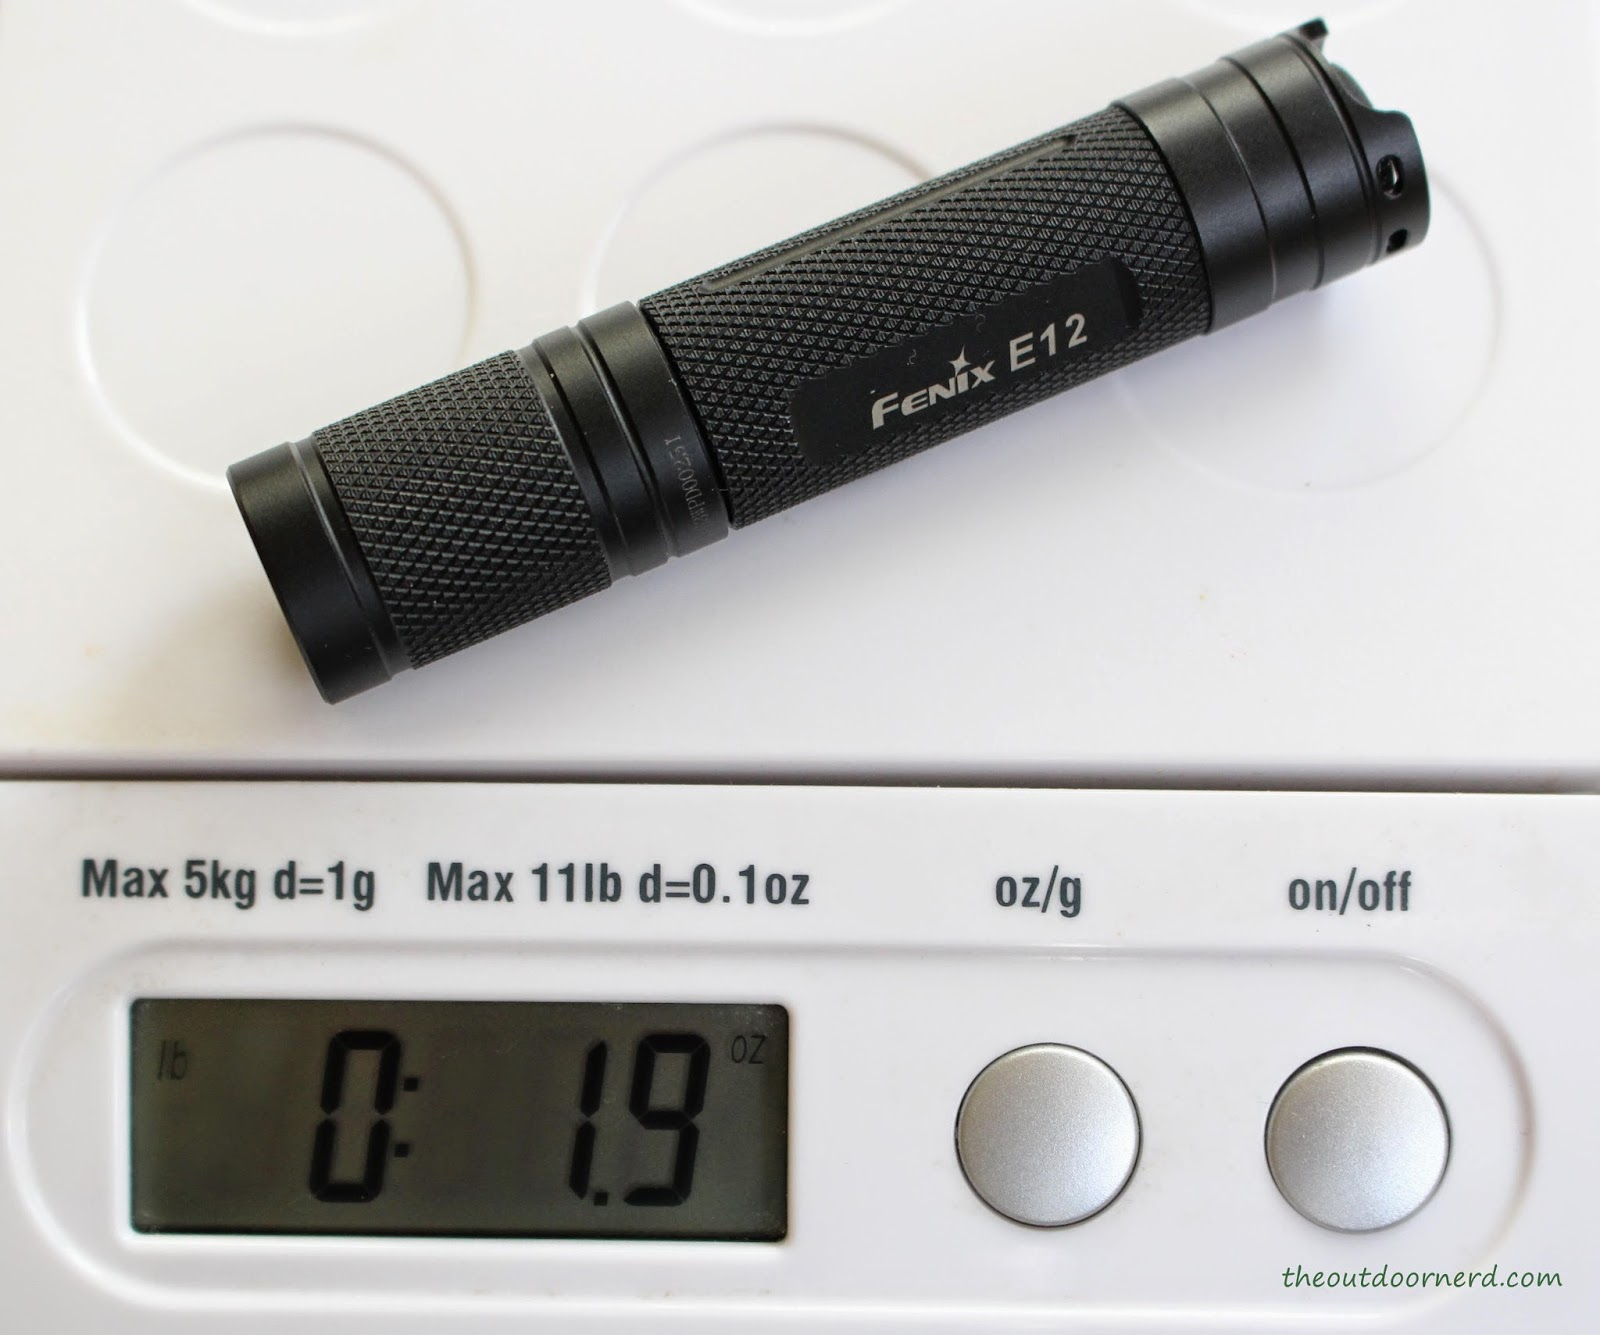 Fenix E12 1xAA EDC Flashlight On Scale